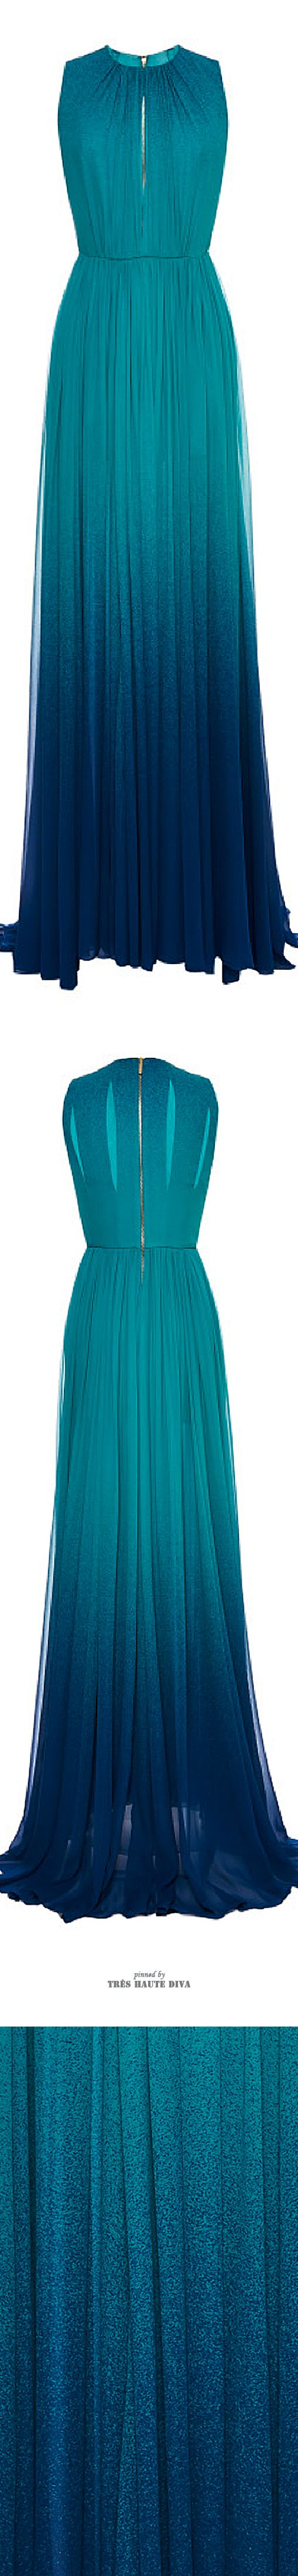 Elie Saab Turquoise Degrade Silk Georgette Dress ♔ SS 2015